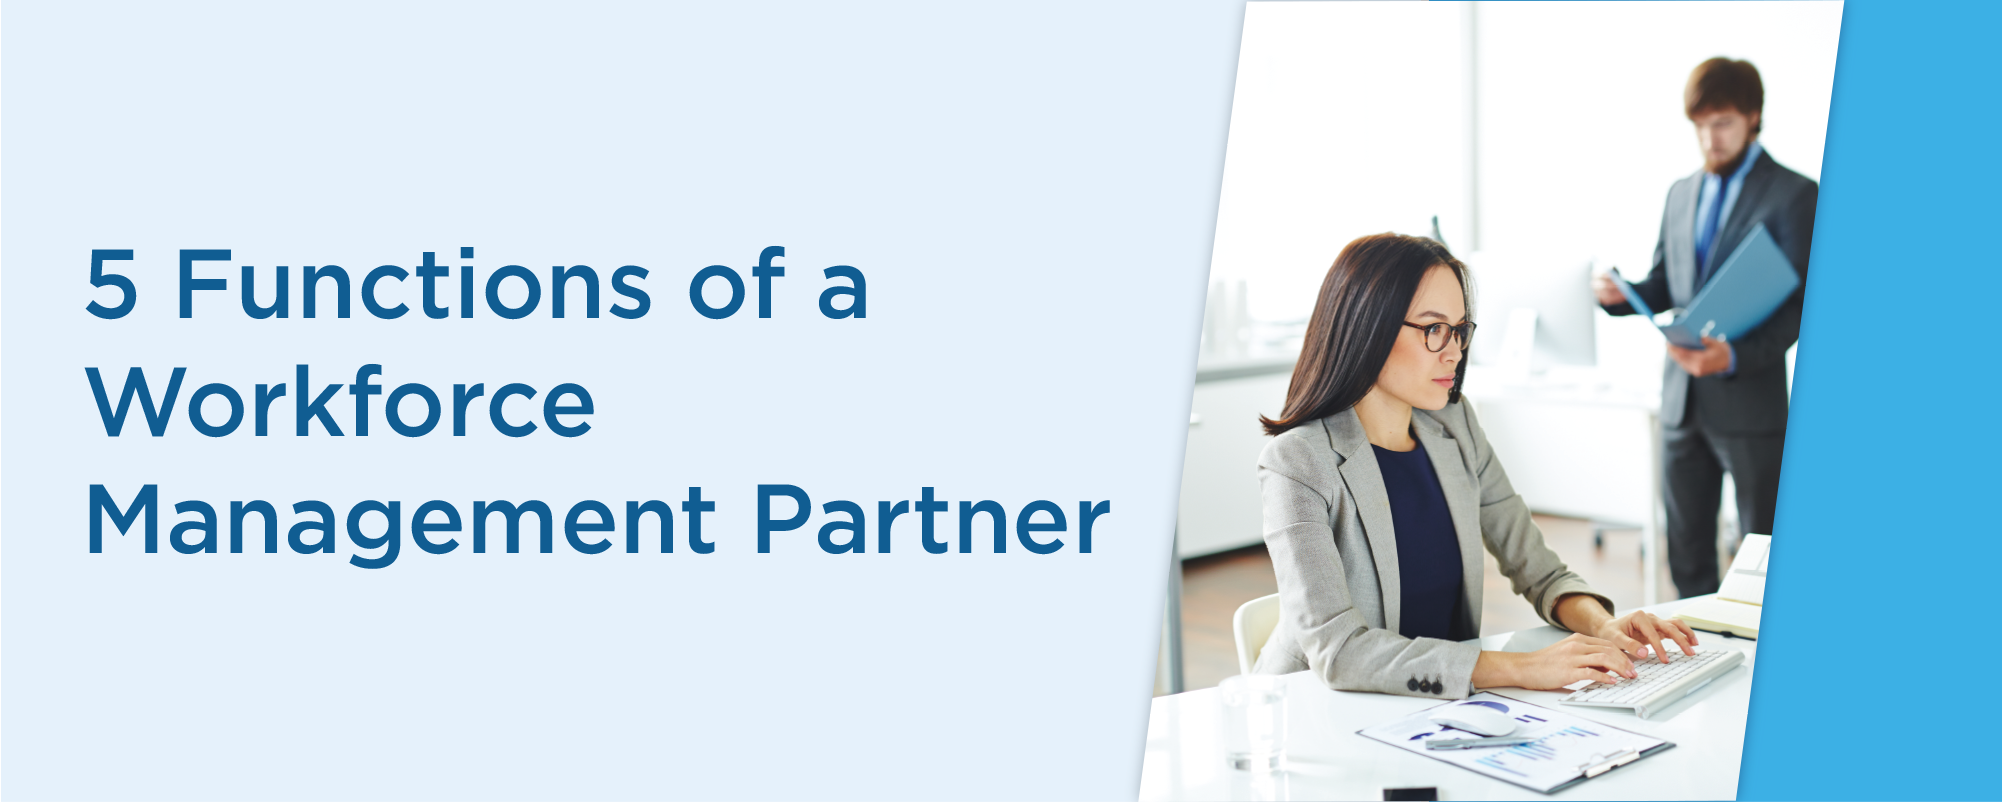 5 functions of a workforce management partner.